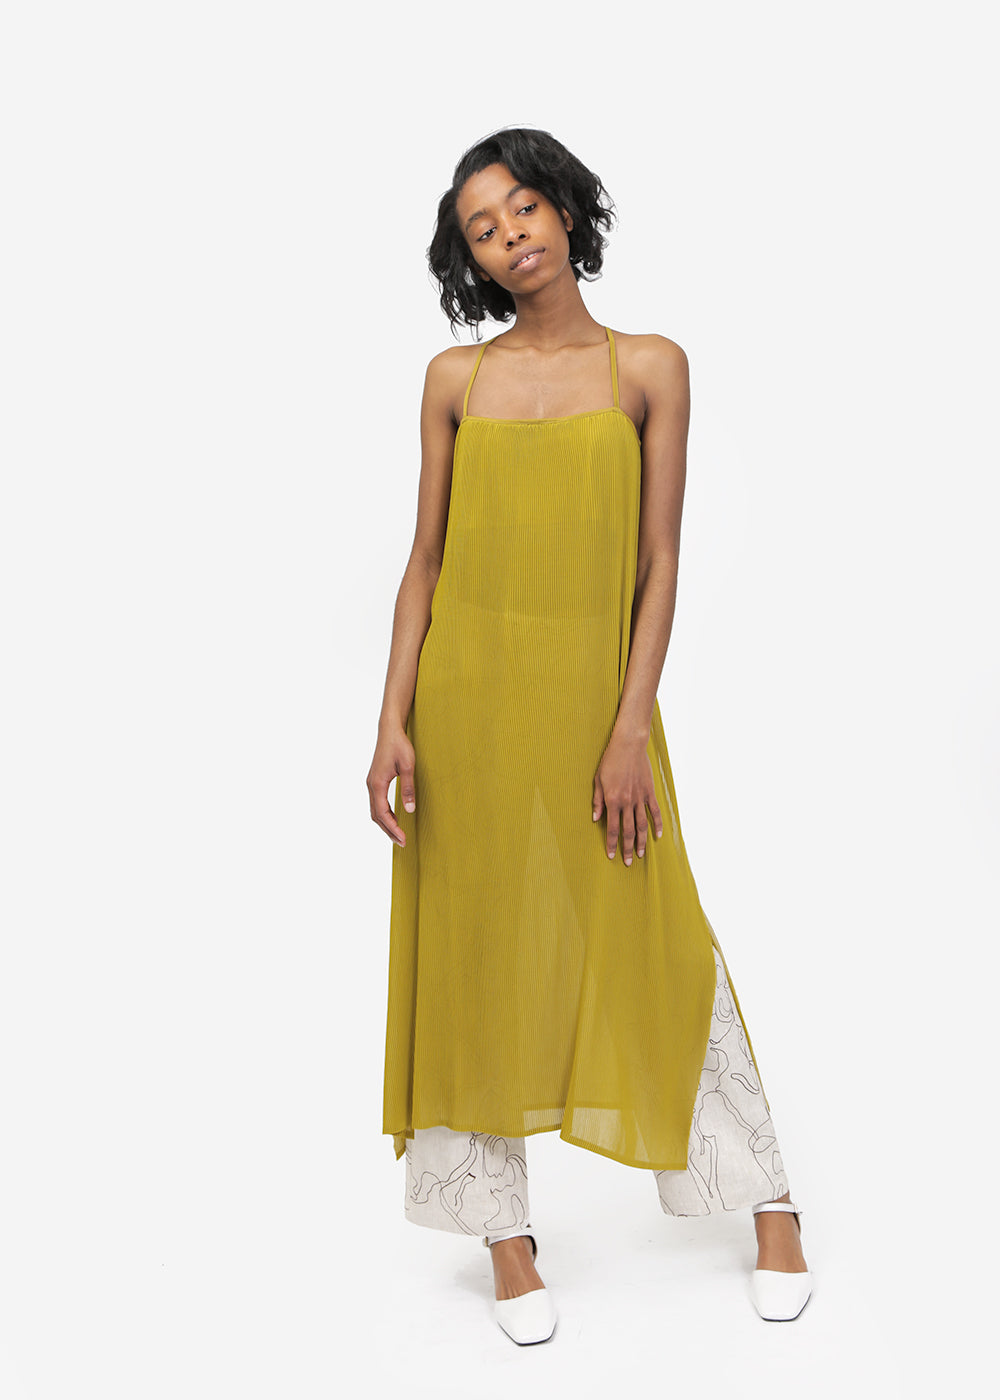 Ajaie Alaie See Through Me Dress — Shop sustainable fashion and slow fashion at New Classics Studios